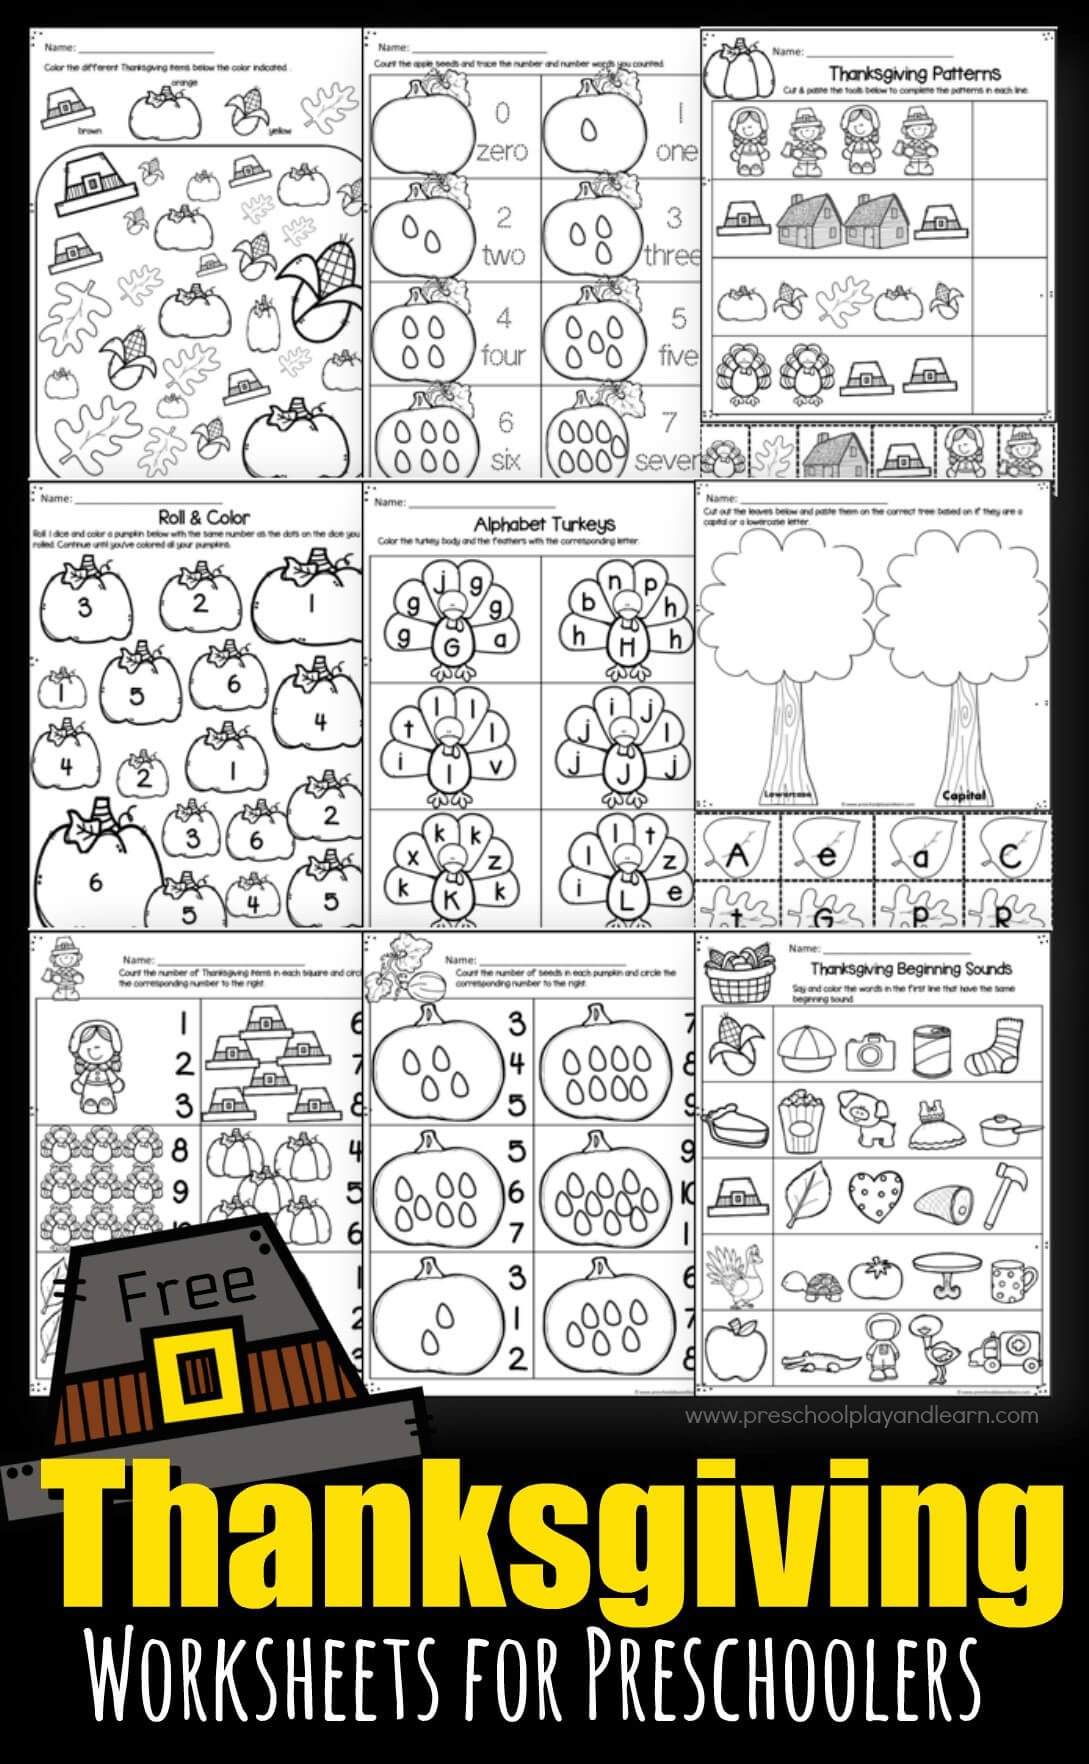 Thanksgiving Pattern Worksheets Thanksgiving Worksheets for Preschoolers